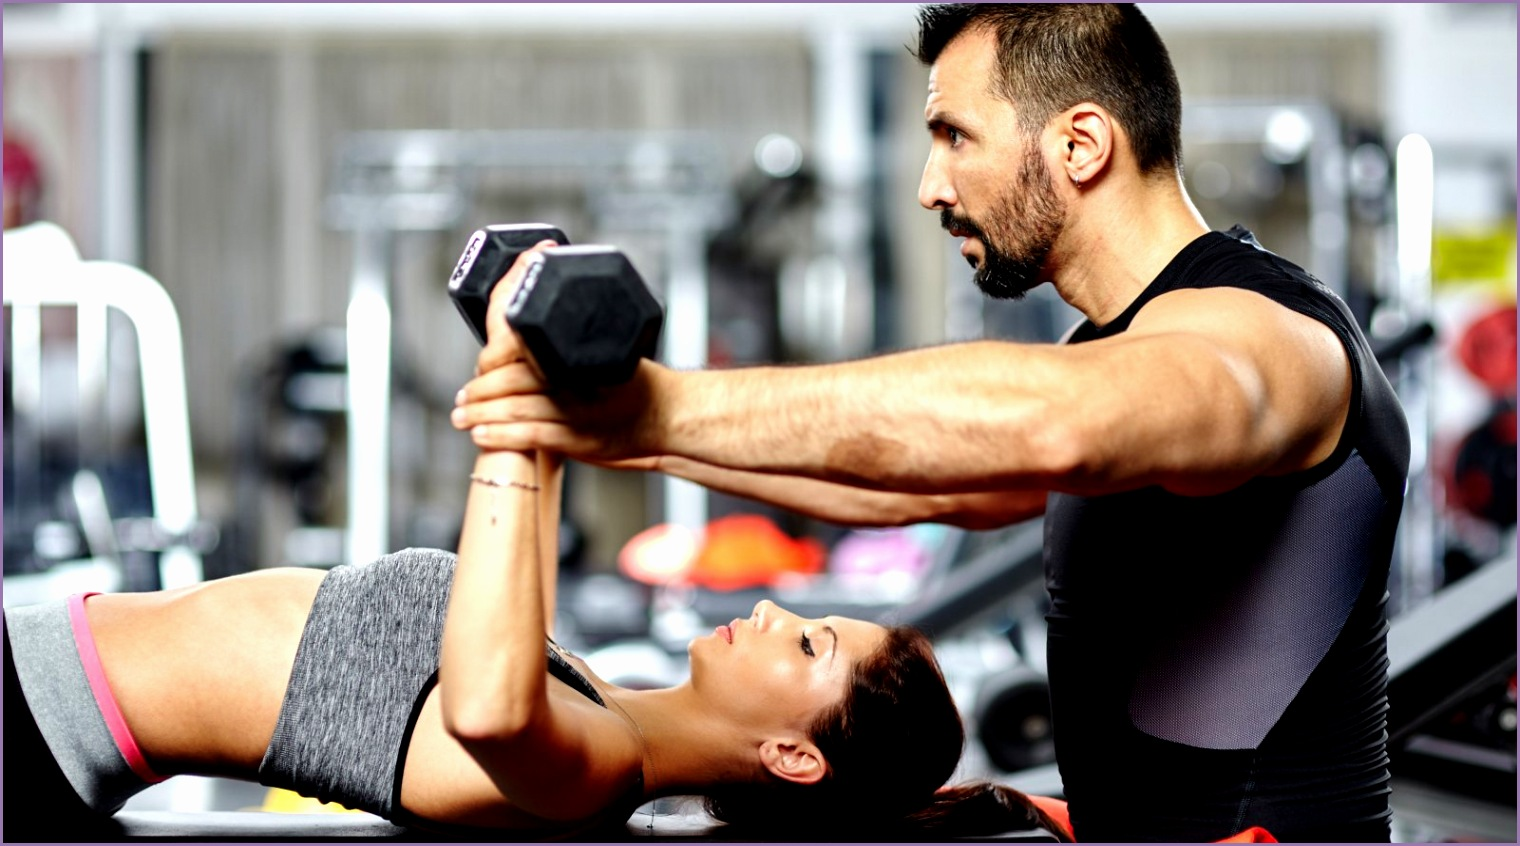 the 10 most annoying habits at the gym and how to deal with them